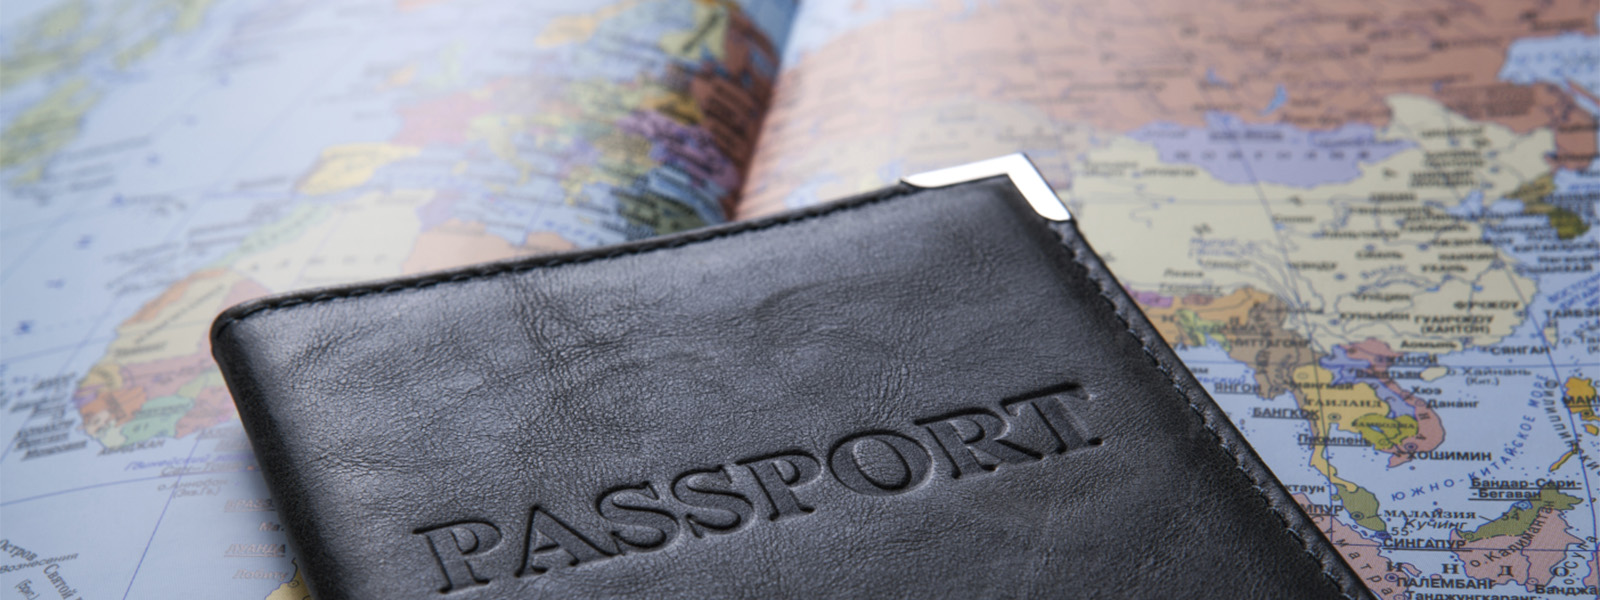 World map & passport